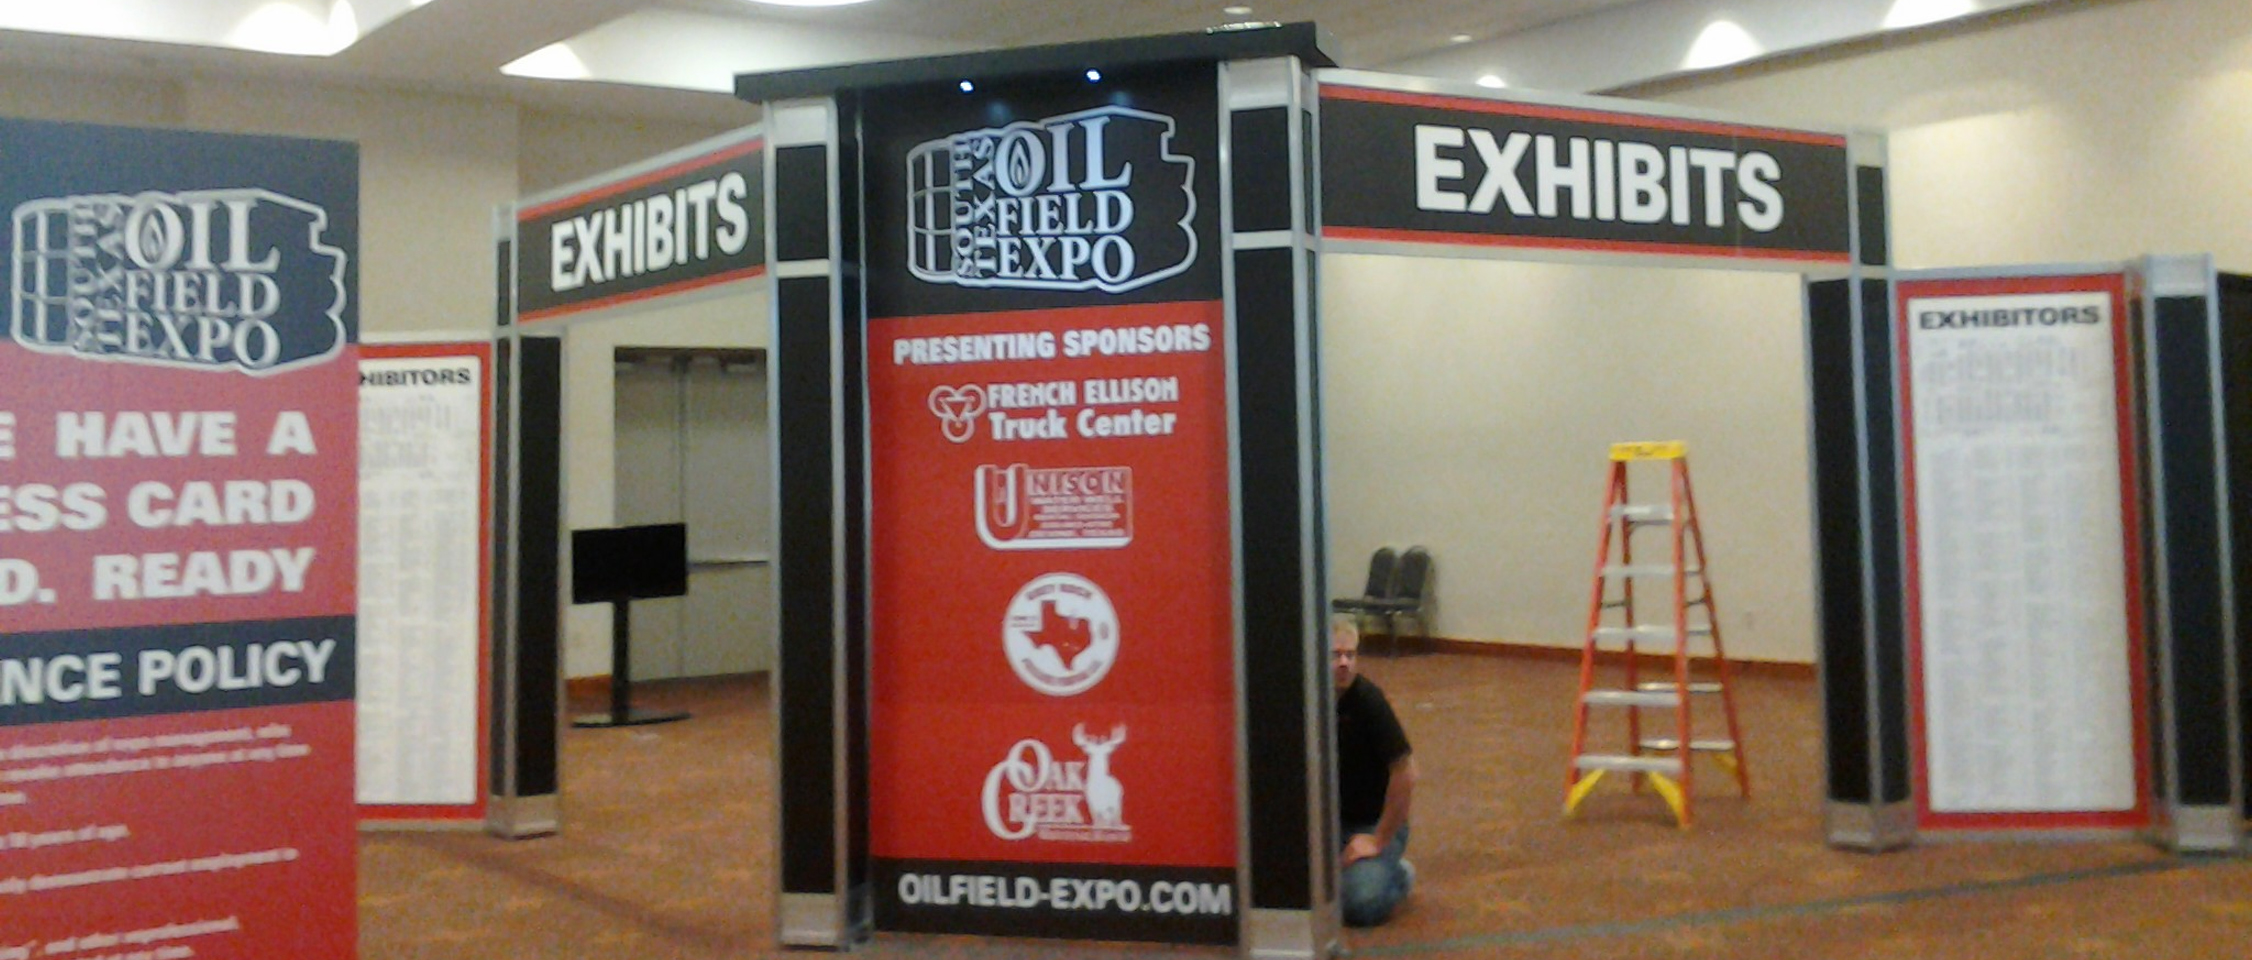 oil field expo